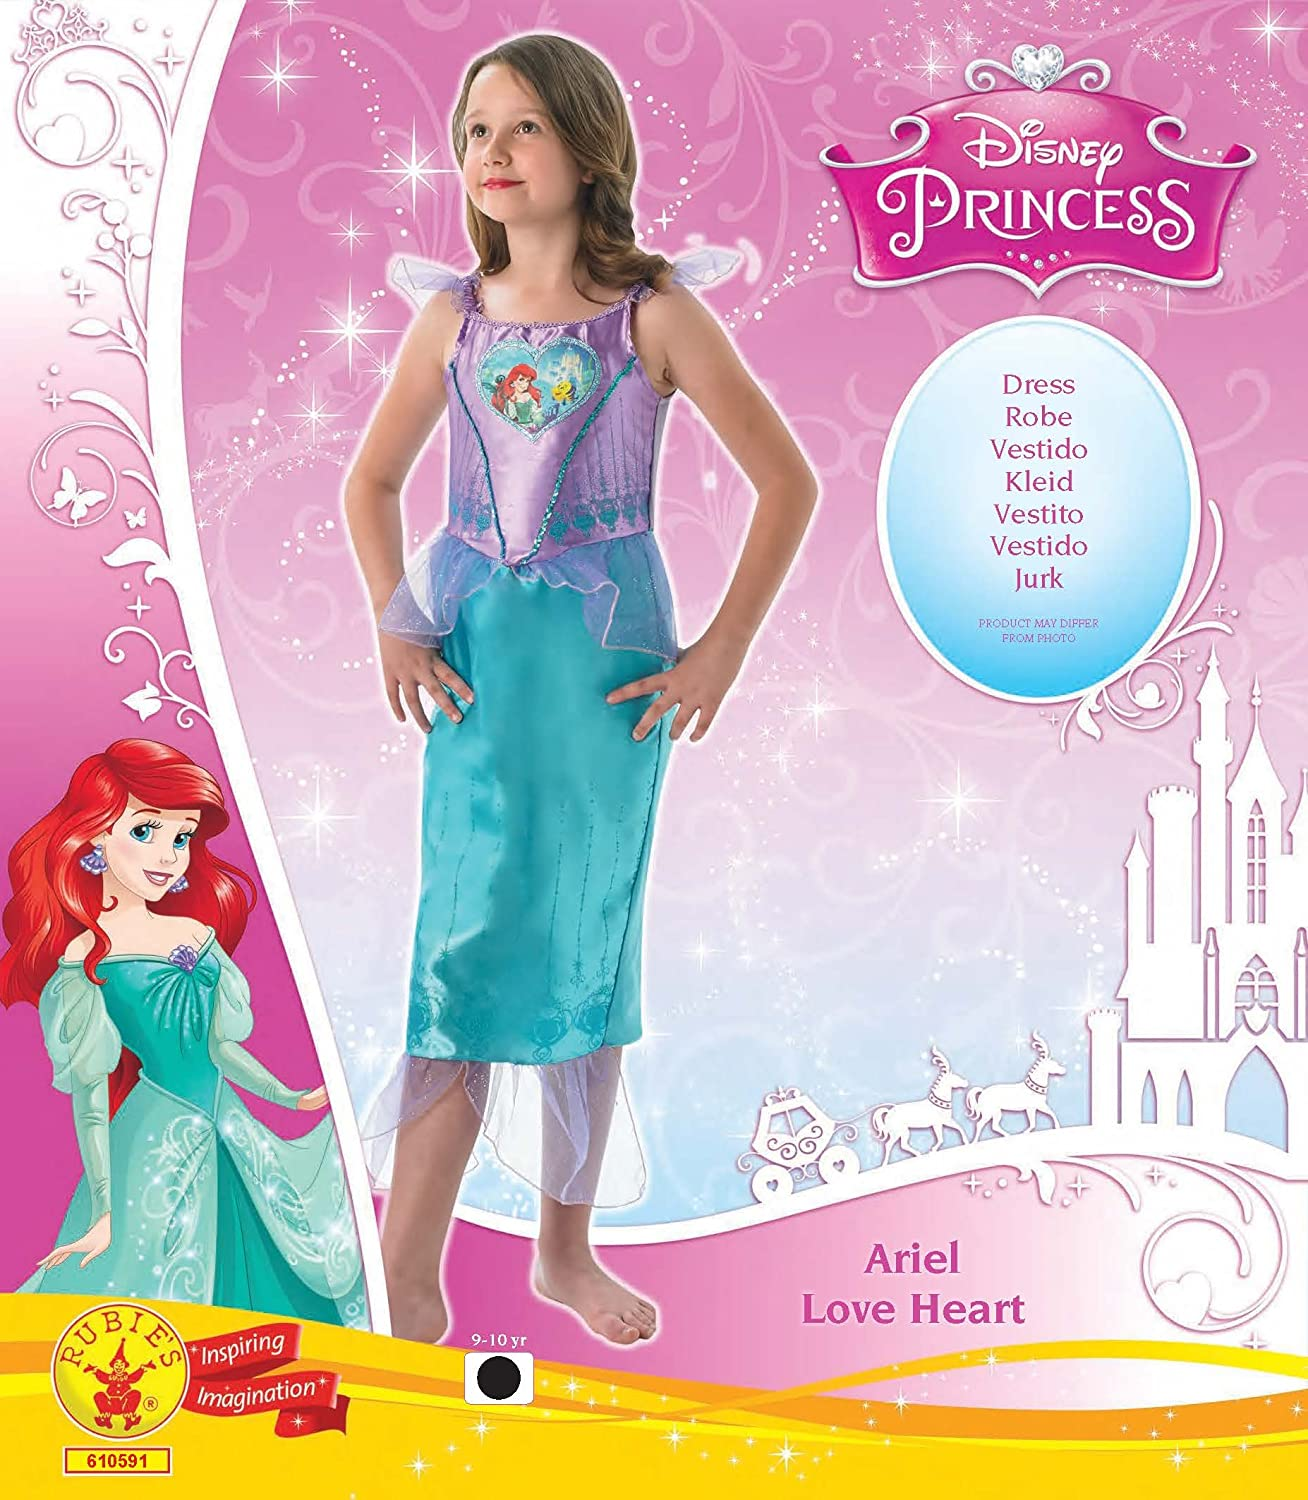 Amazon.com: Rubies Big Boys Disney Princess - Ariel (Love Heart) - Costume 9/10 Years - 140cm: Clothing